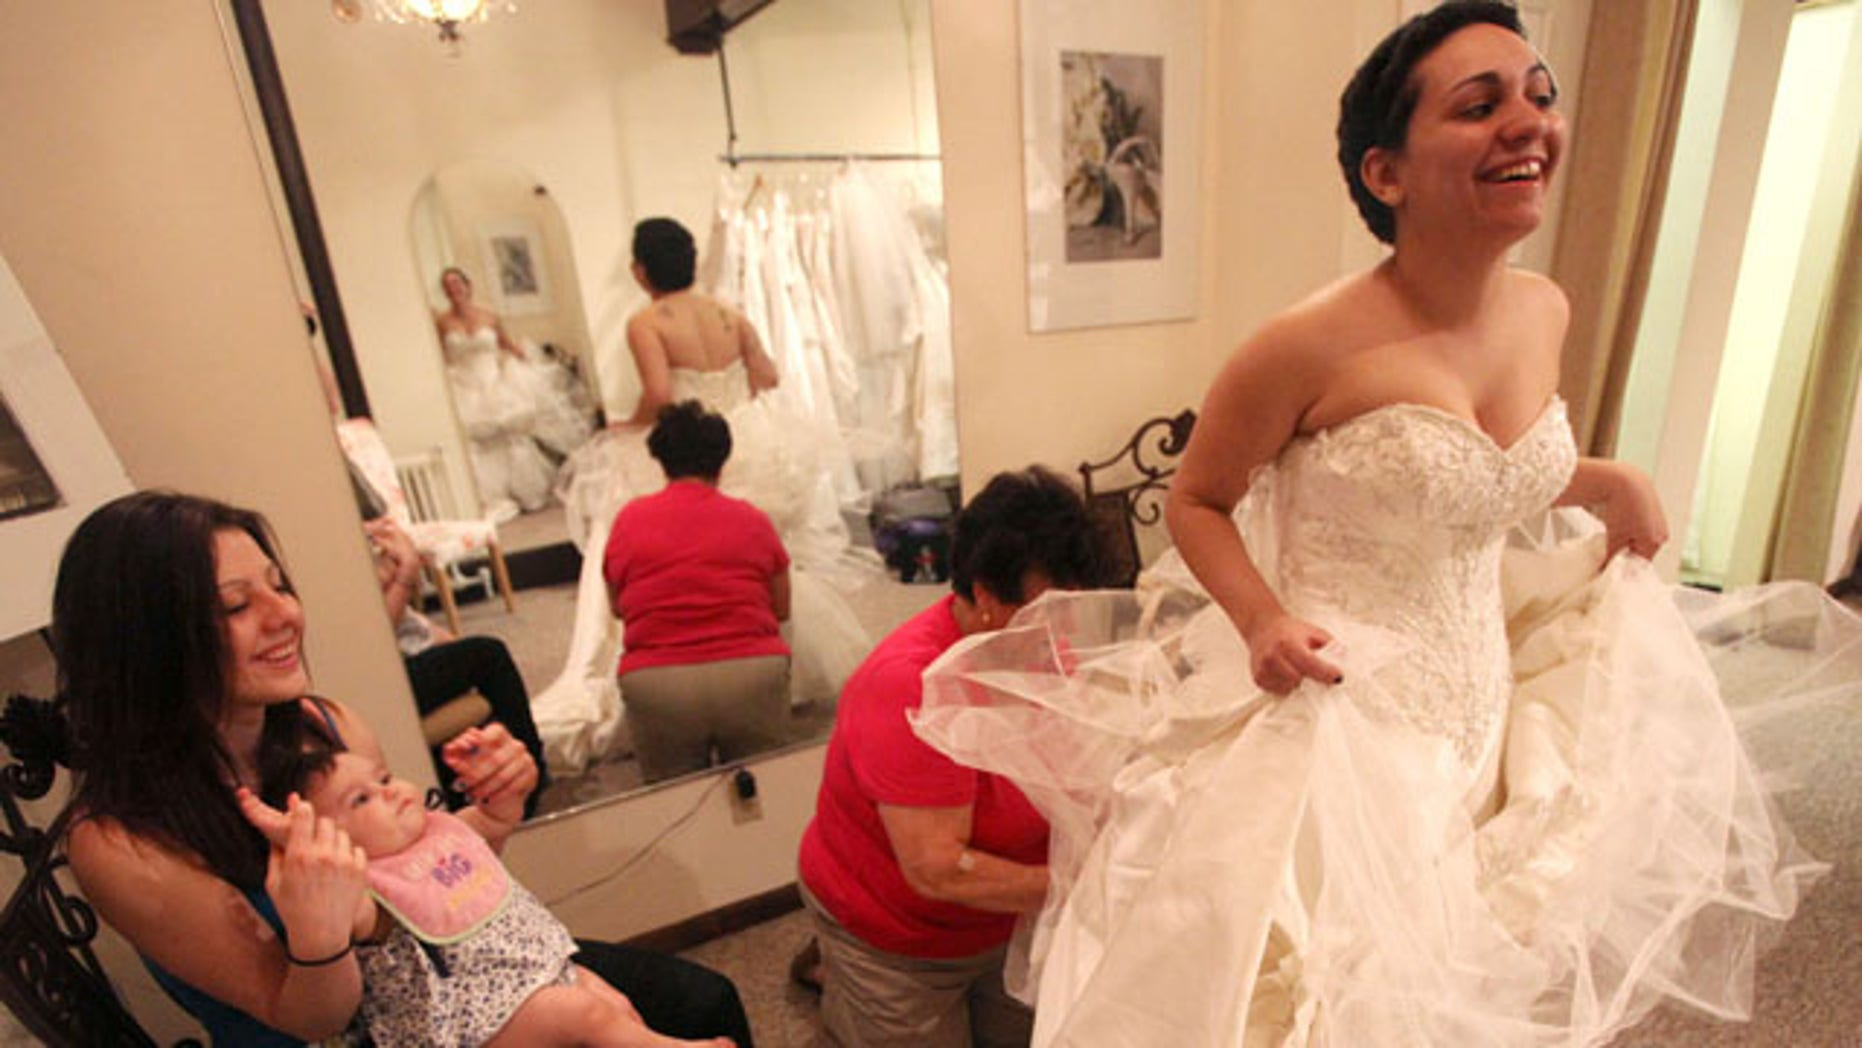 April 8, 2010: Stopping bythe Newburgh dress shop, Bella Coutre, the shop that donated her wedding gown, Jessica Vega is fitted for her wedding gown. Her friend, Kourtney Currier minds Ava at left, while Lorenza Martelli works on the dress.